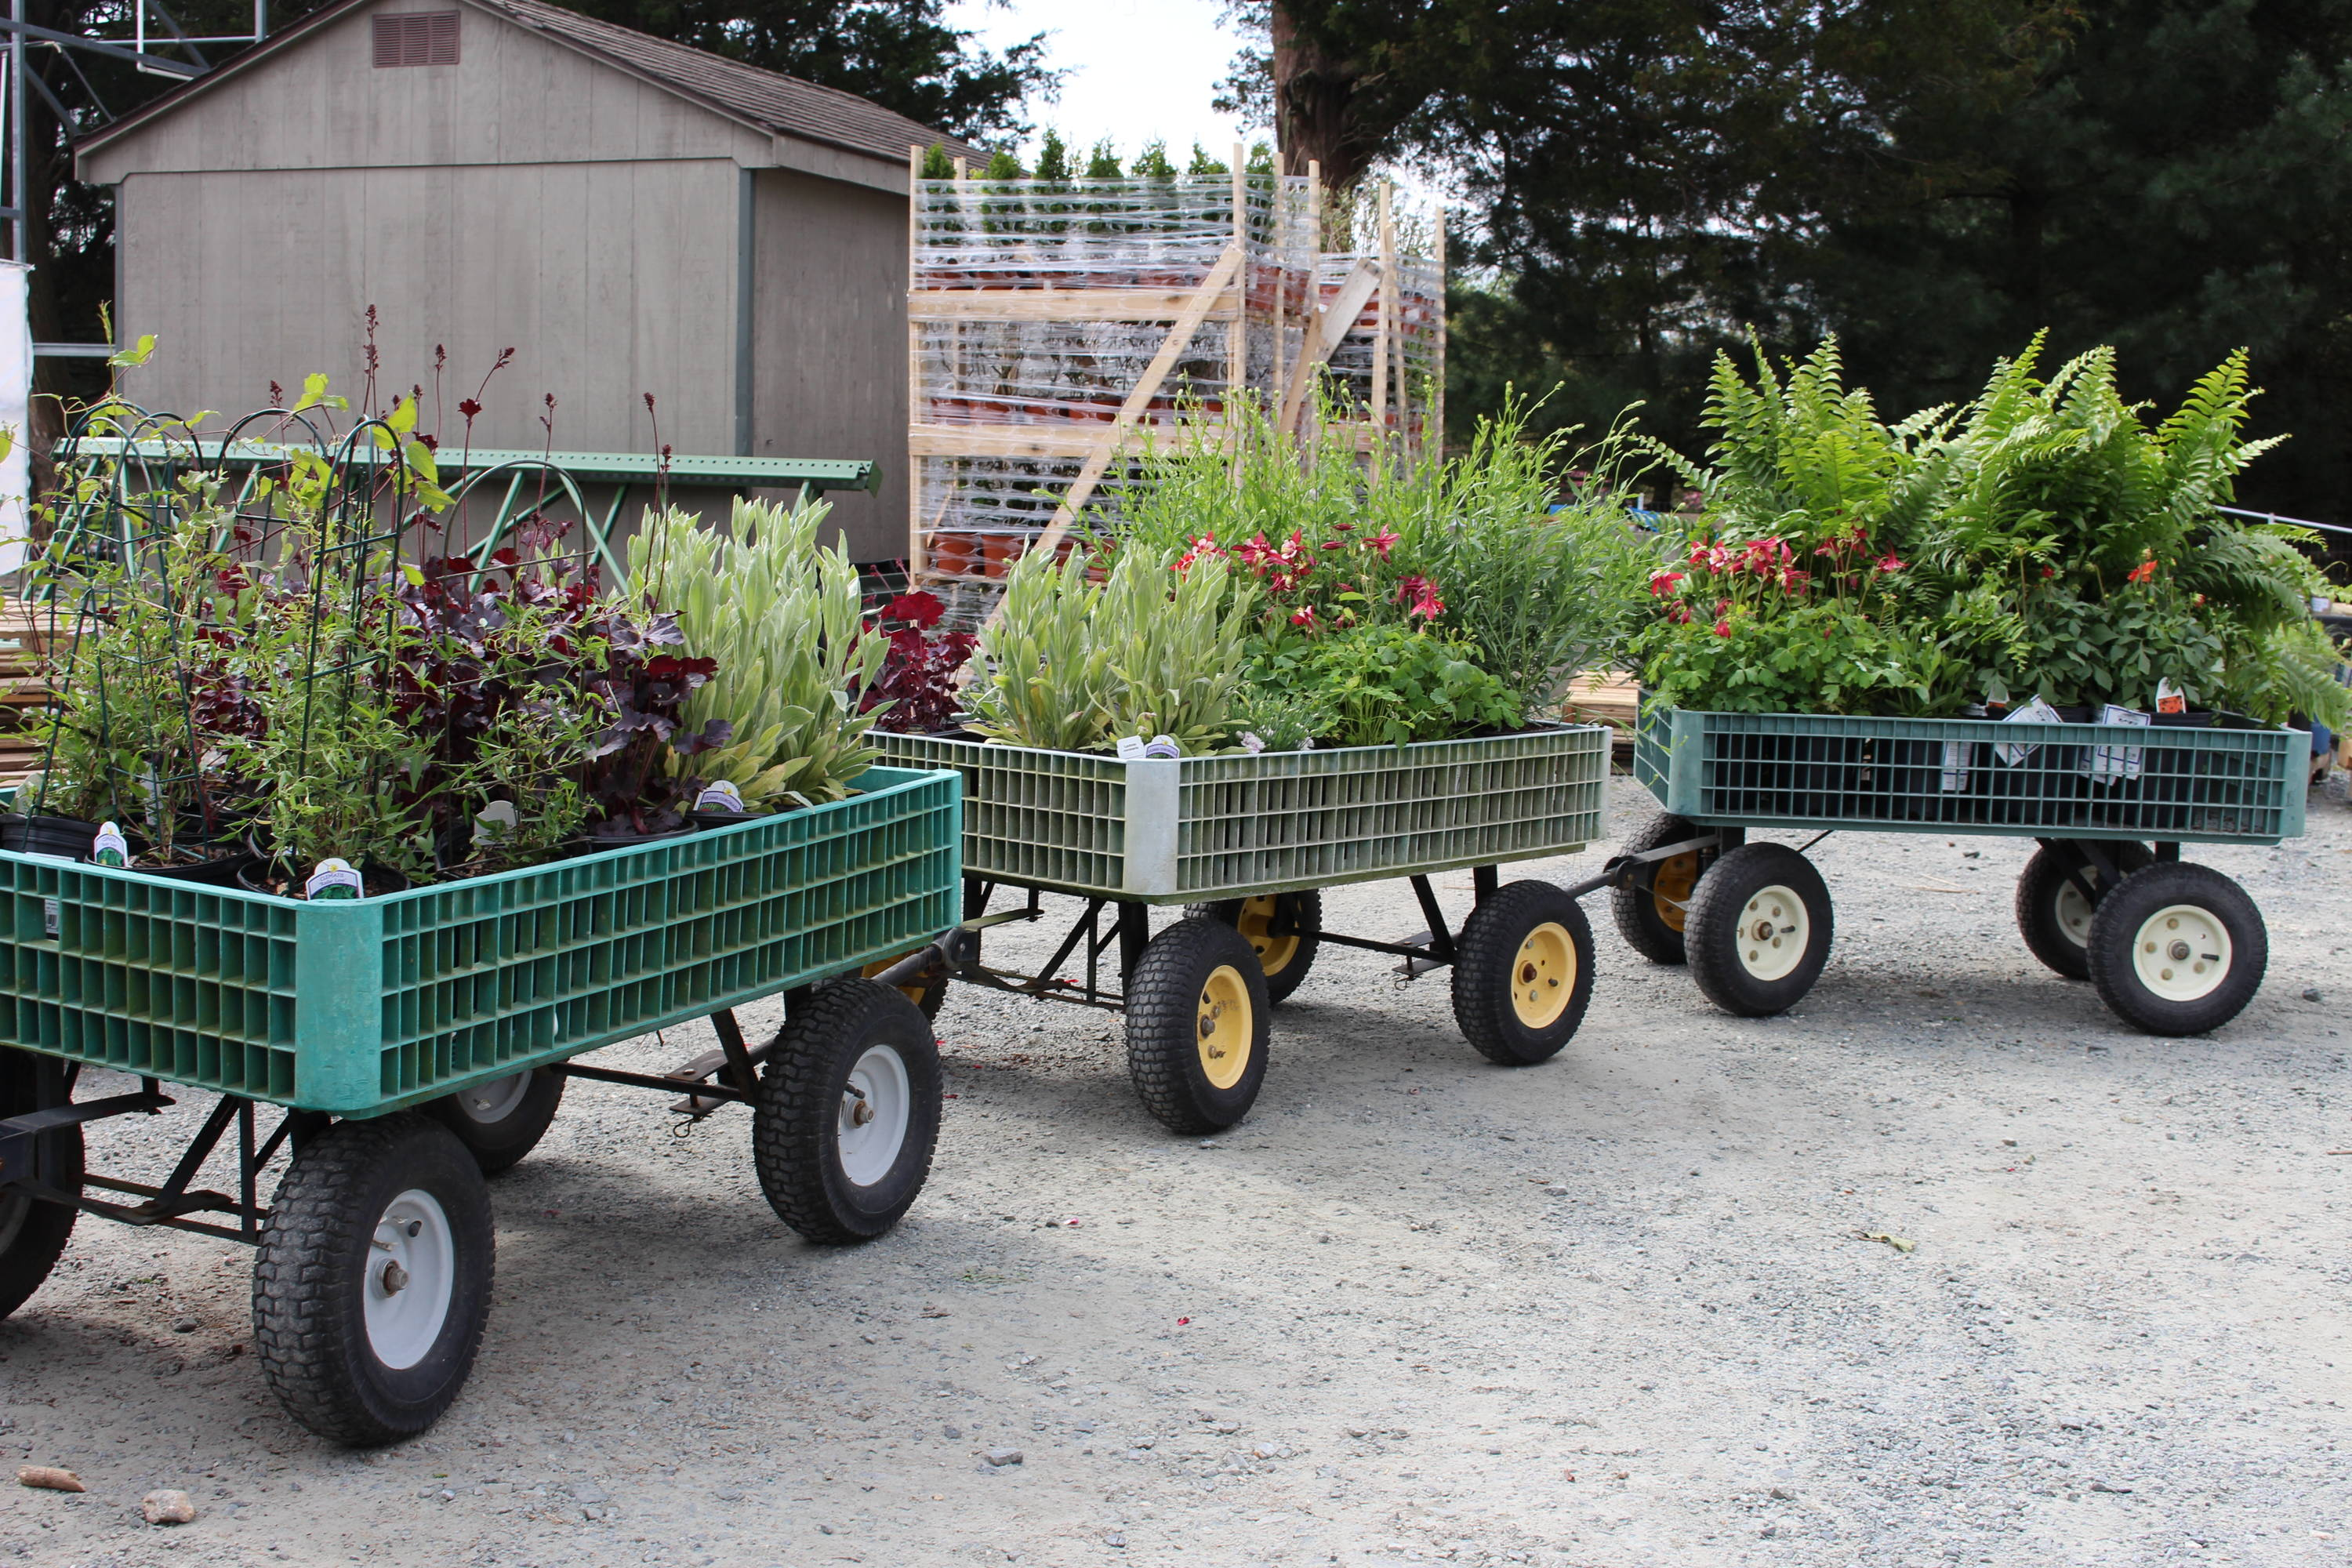 Hand wagons filled with plants.